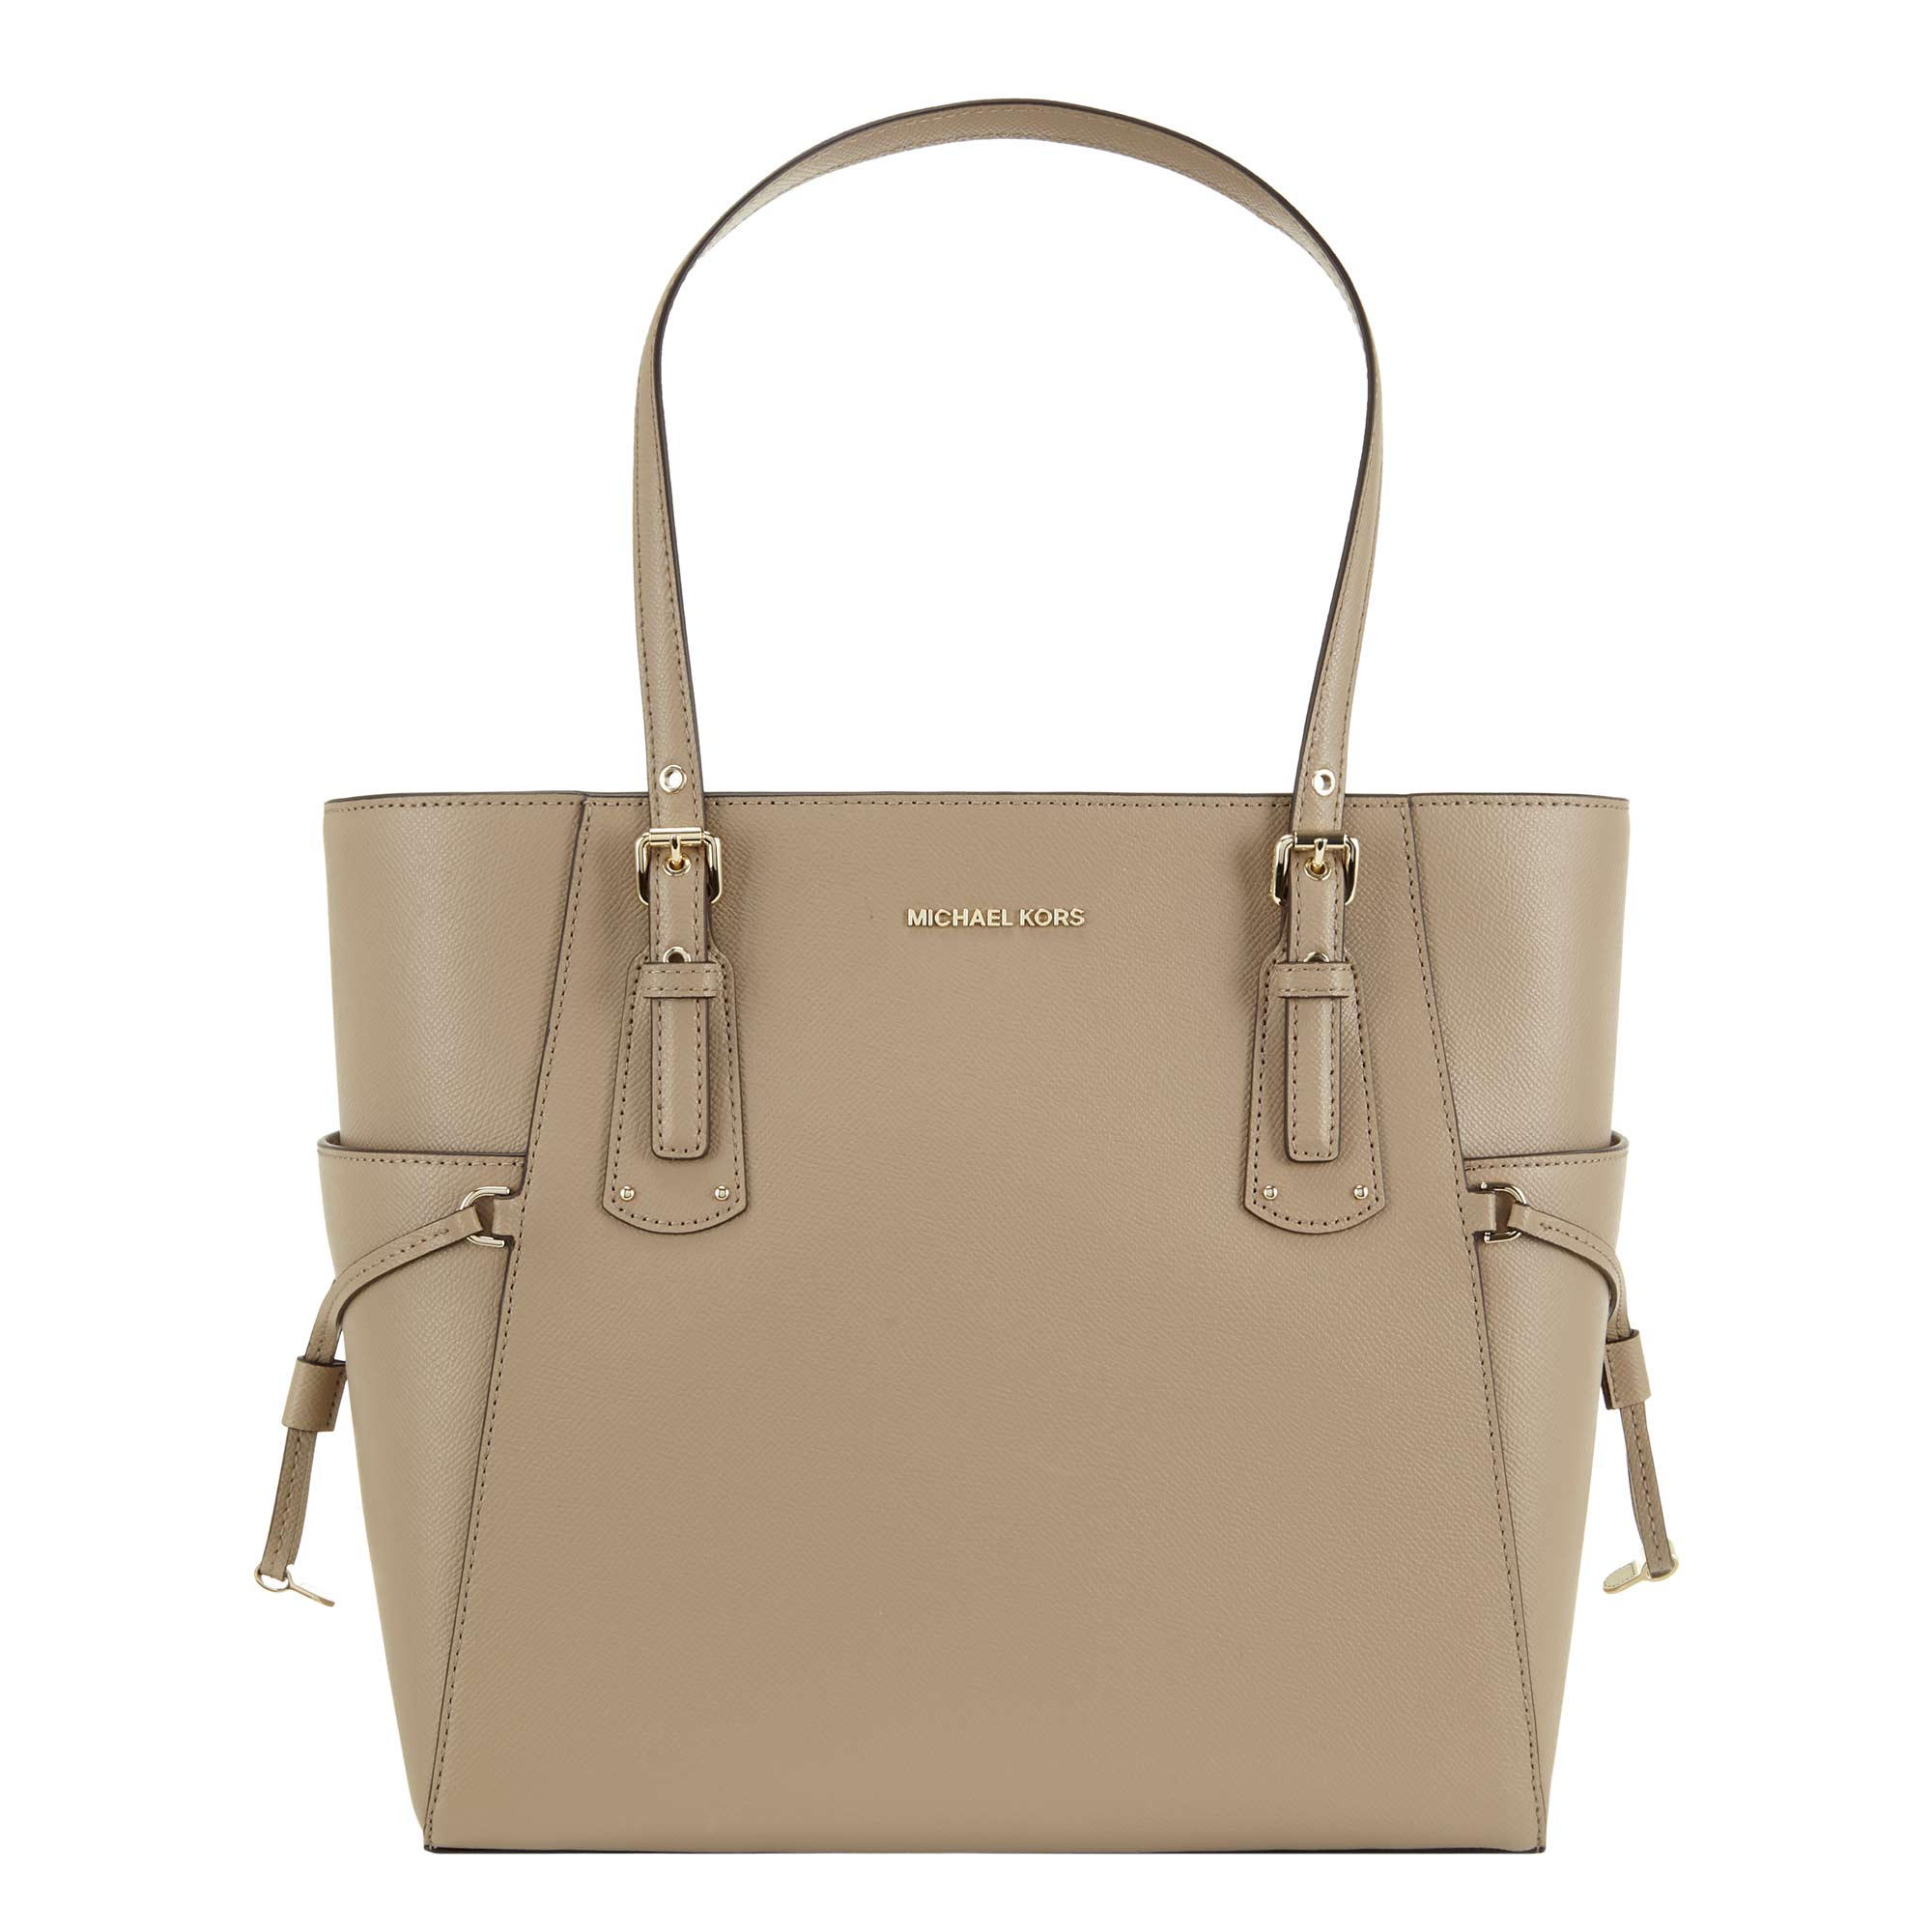 138220049: Voyager Tote